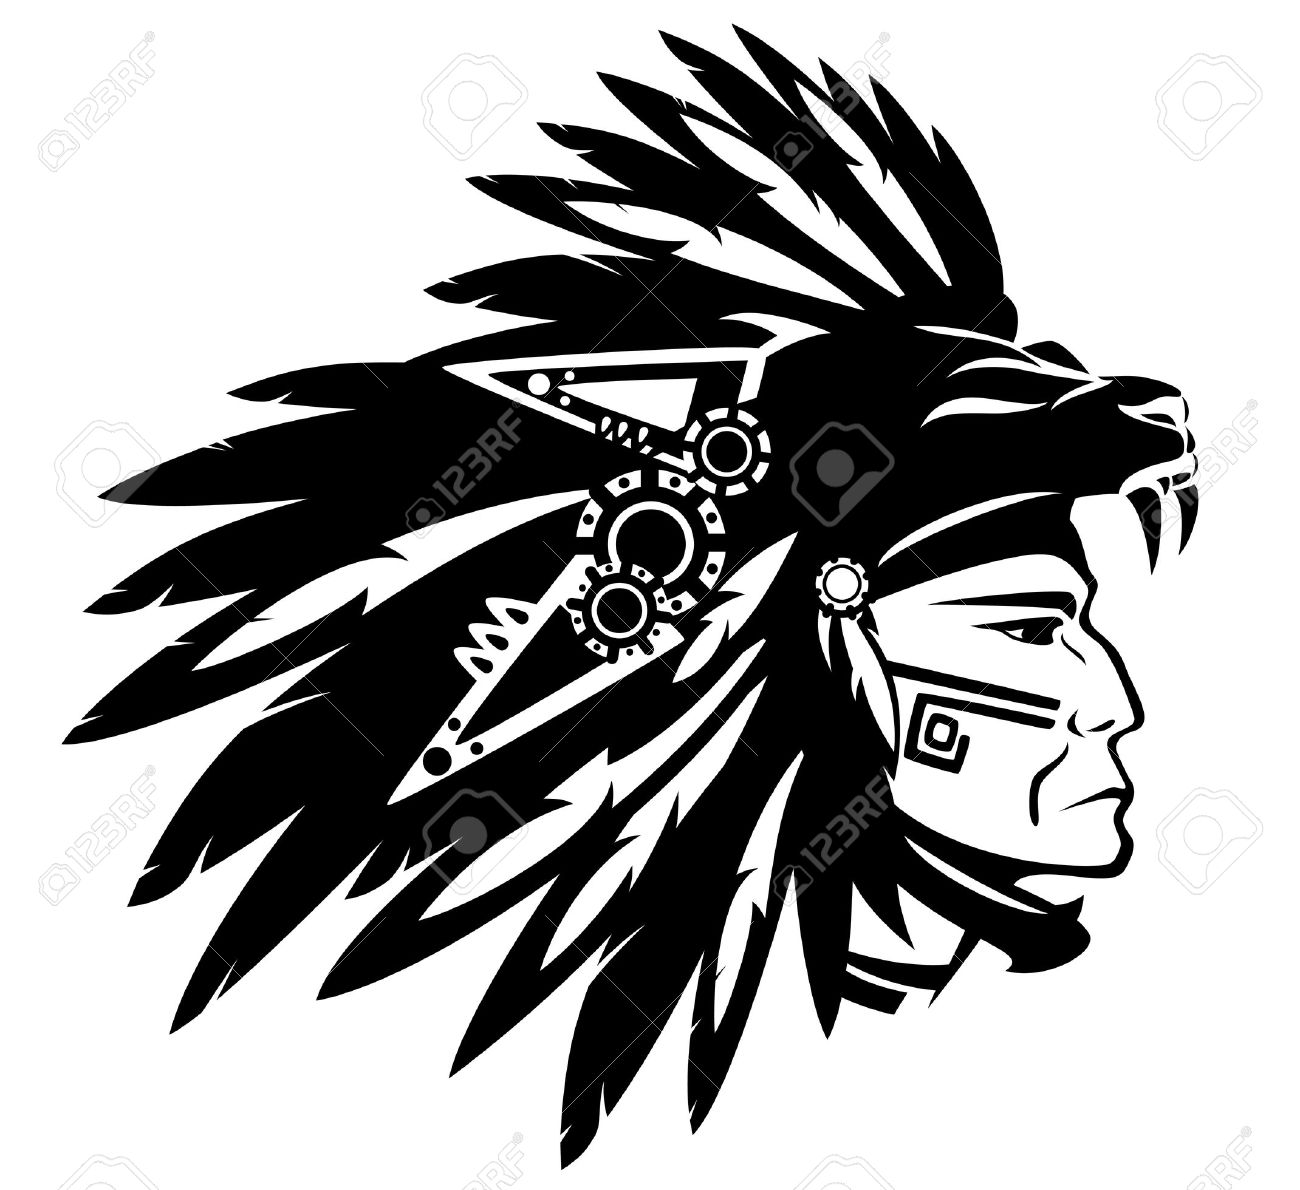 Aztec Warrior Outline Wiring Diagrams Home Gt Structured Legrand Onq Ht2103whv1 Theater Tribe Wearing Feather Headdress With Panther Head Rh 123rf Com Drawings